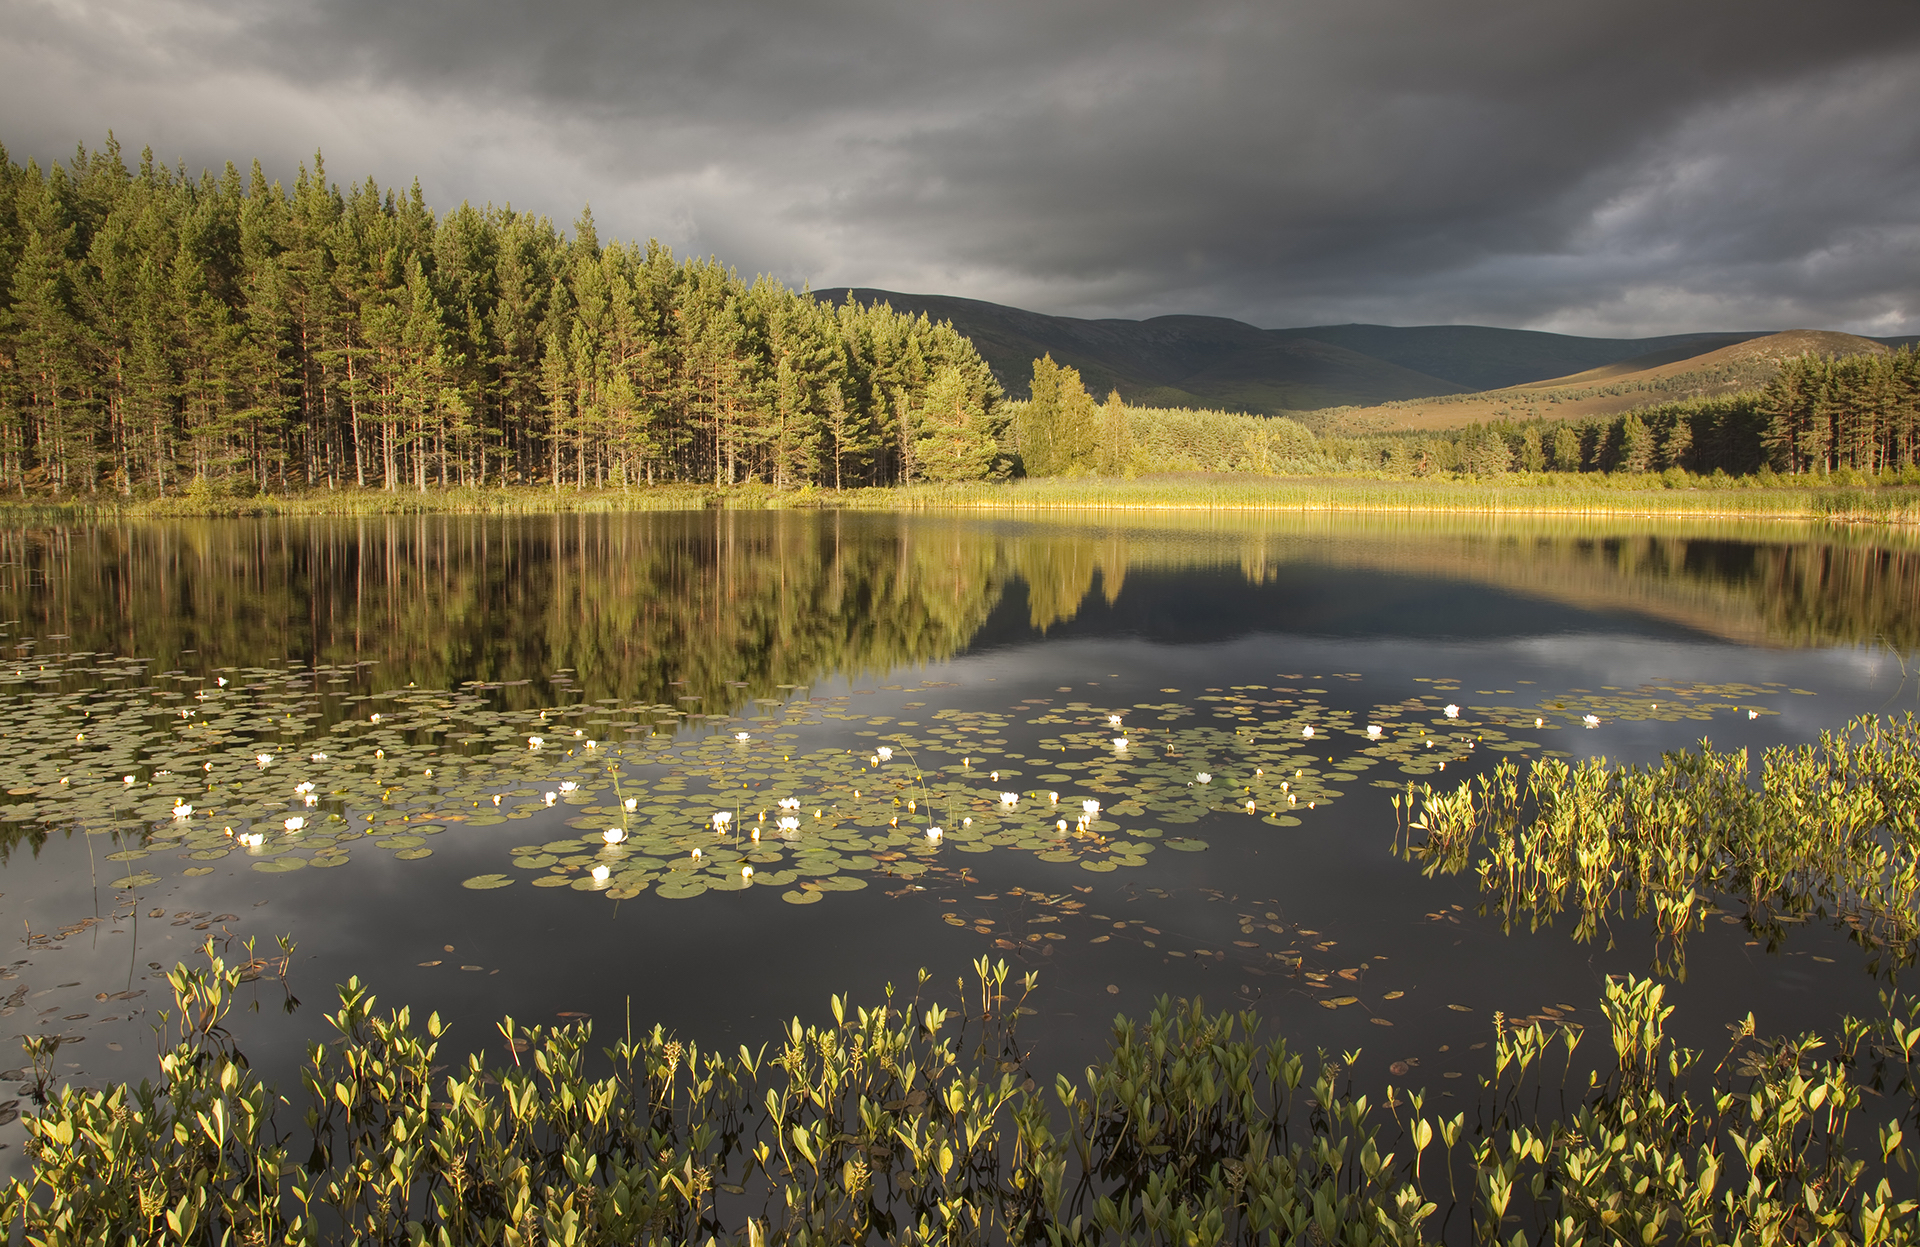 Rewilding offers Scotland a brighter future. - Scotland could be a world leader in transforming its environment so that it works in all its colourful complexity, cleaning air and water, storing carbon, reducing flooding and attracting people to live, work and visit.